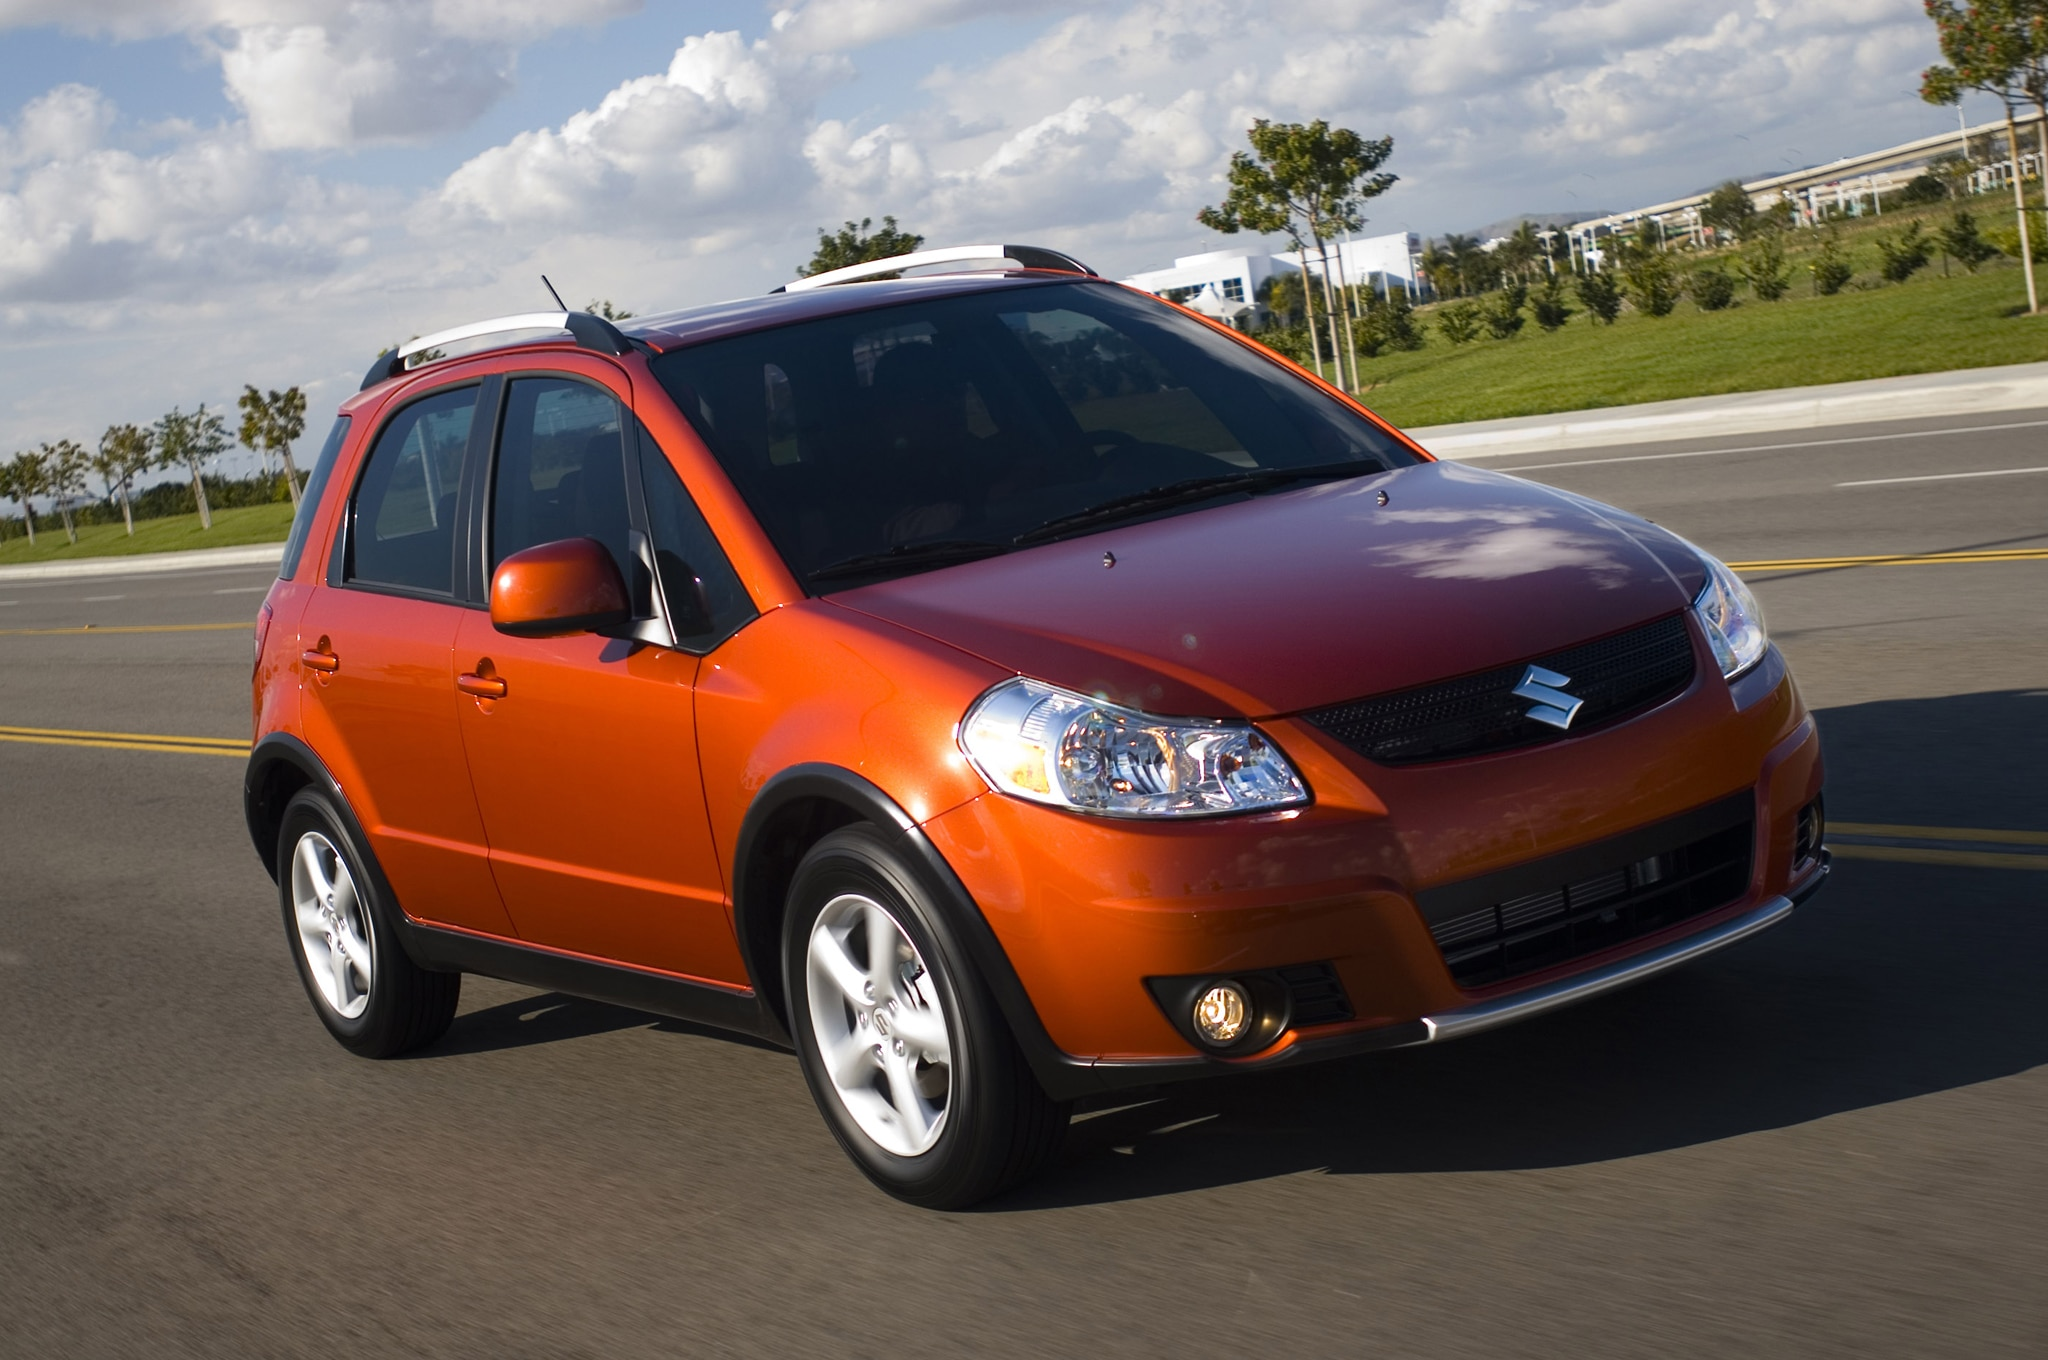 suzuki recalls 193 936 grand vitara sx4 models for airbag. Black Bedroom Furniture Sets. Home Design Ideas